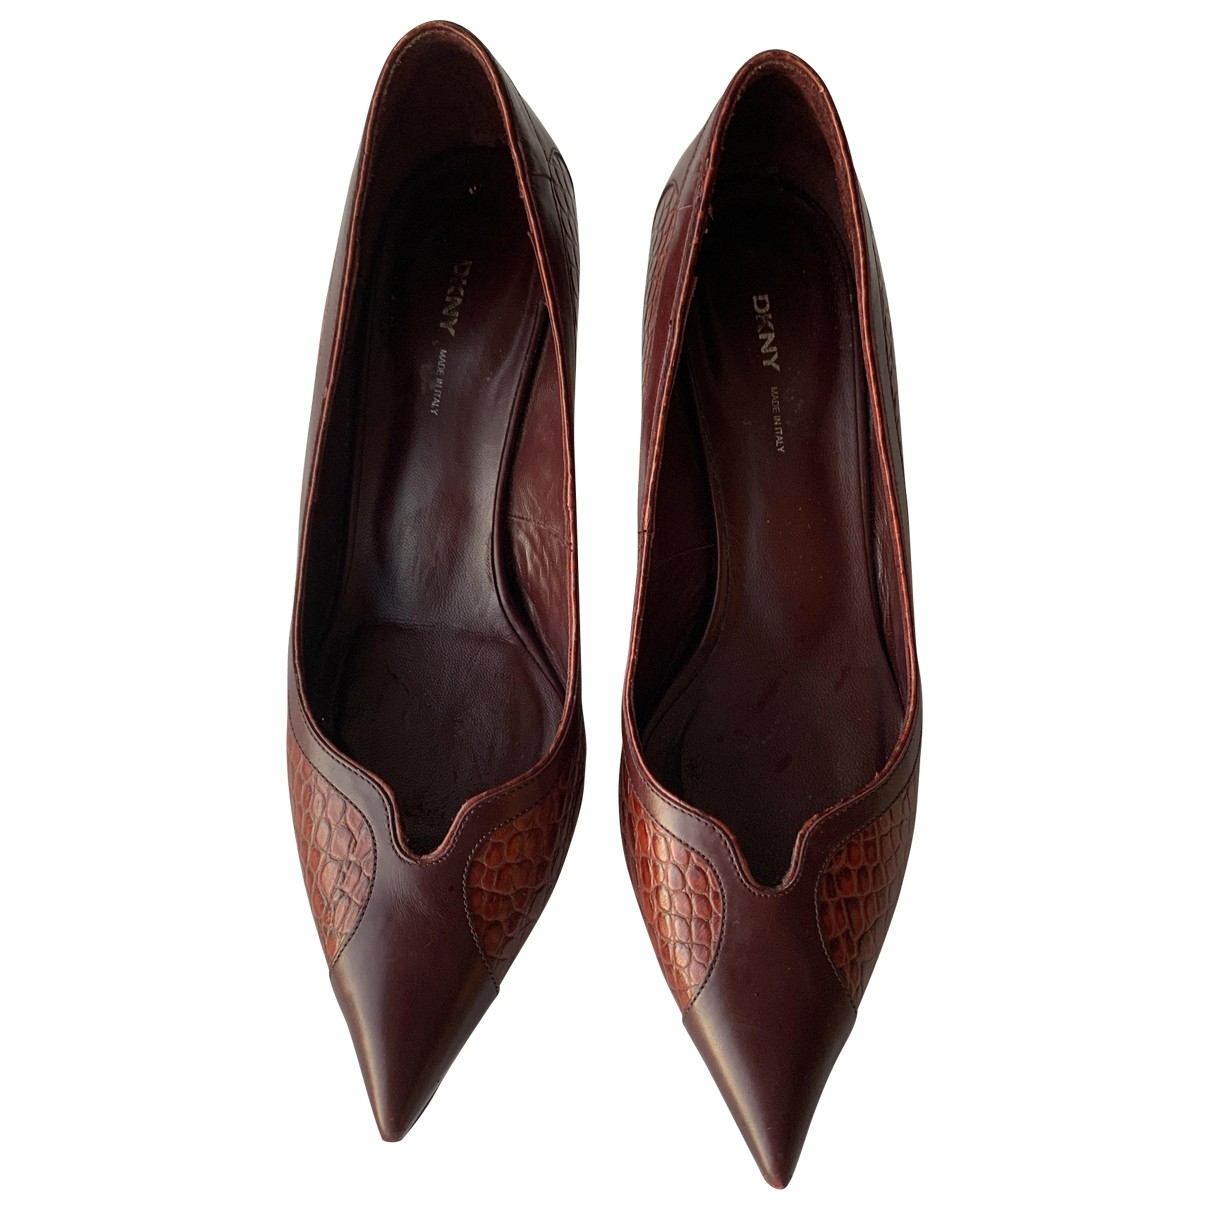 Dkny \N Burgundy Leather Heels for Women 9 US